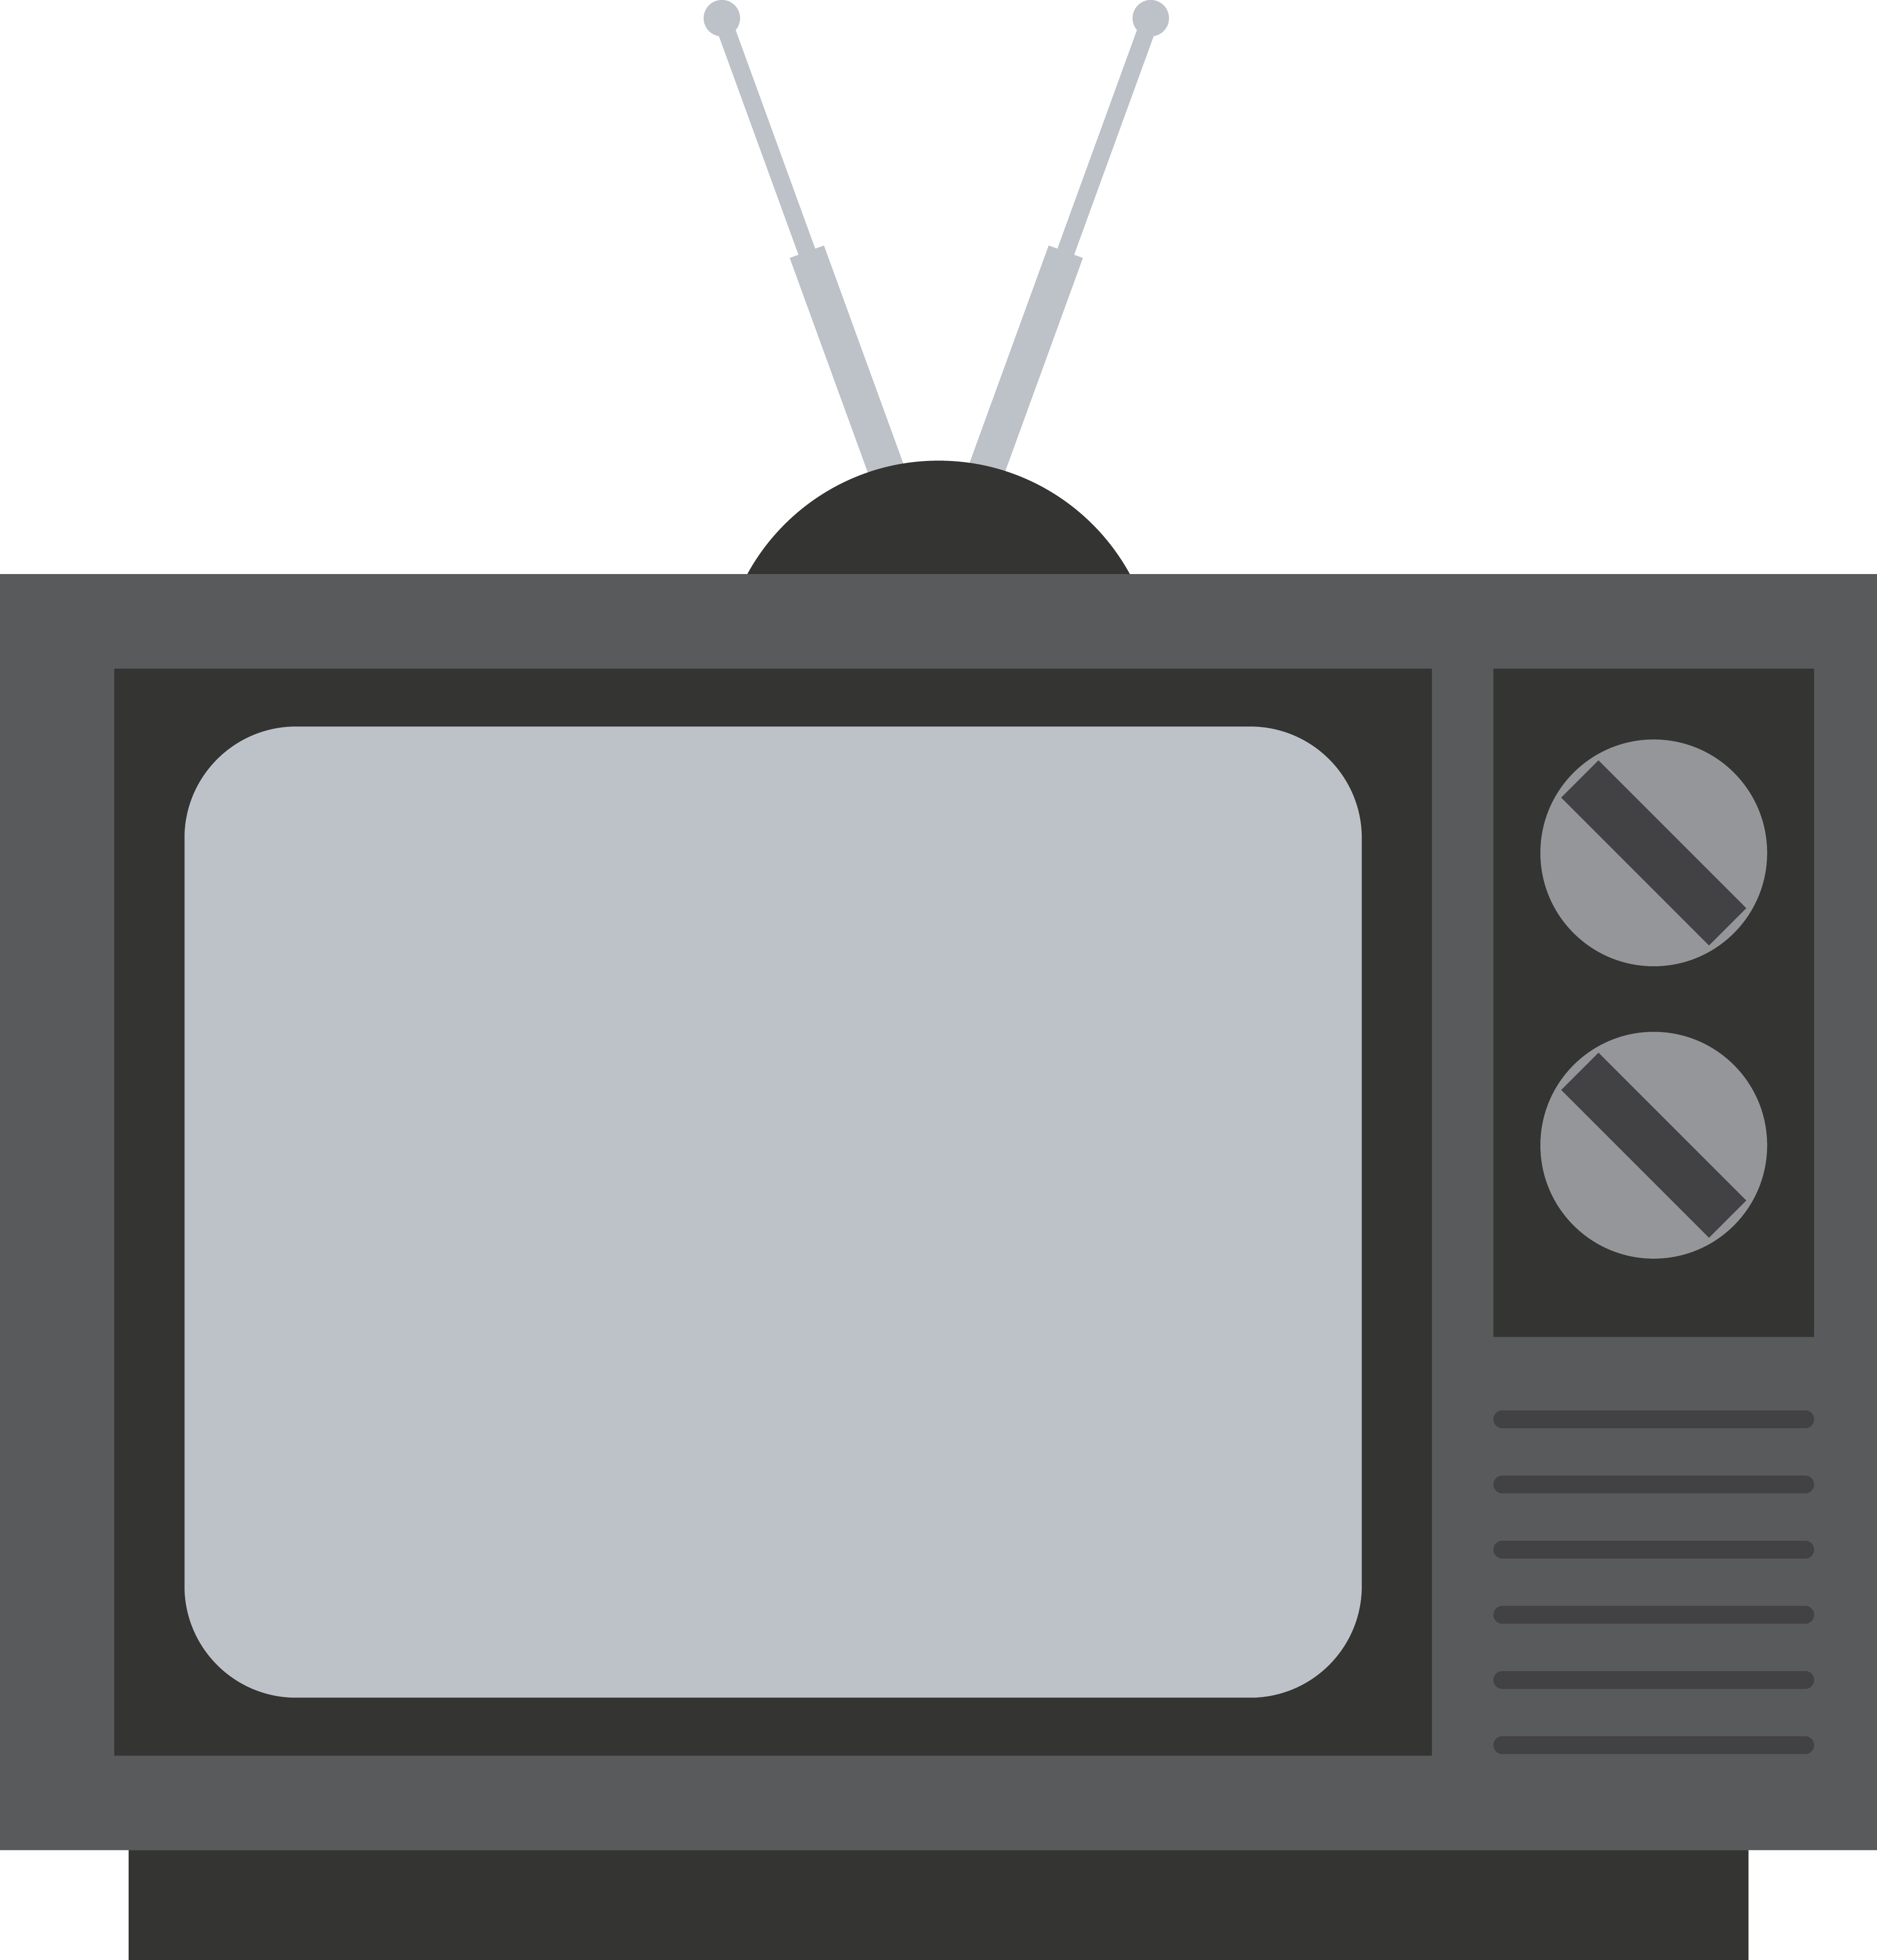 Old Television Png Image Olds Black And White Television